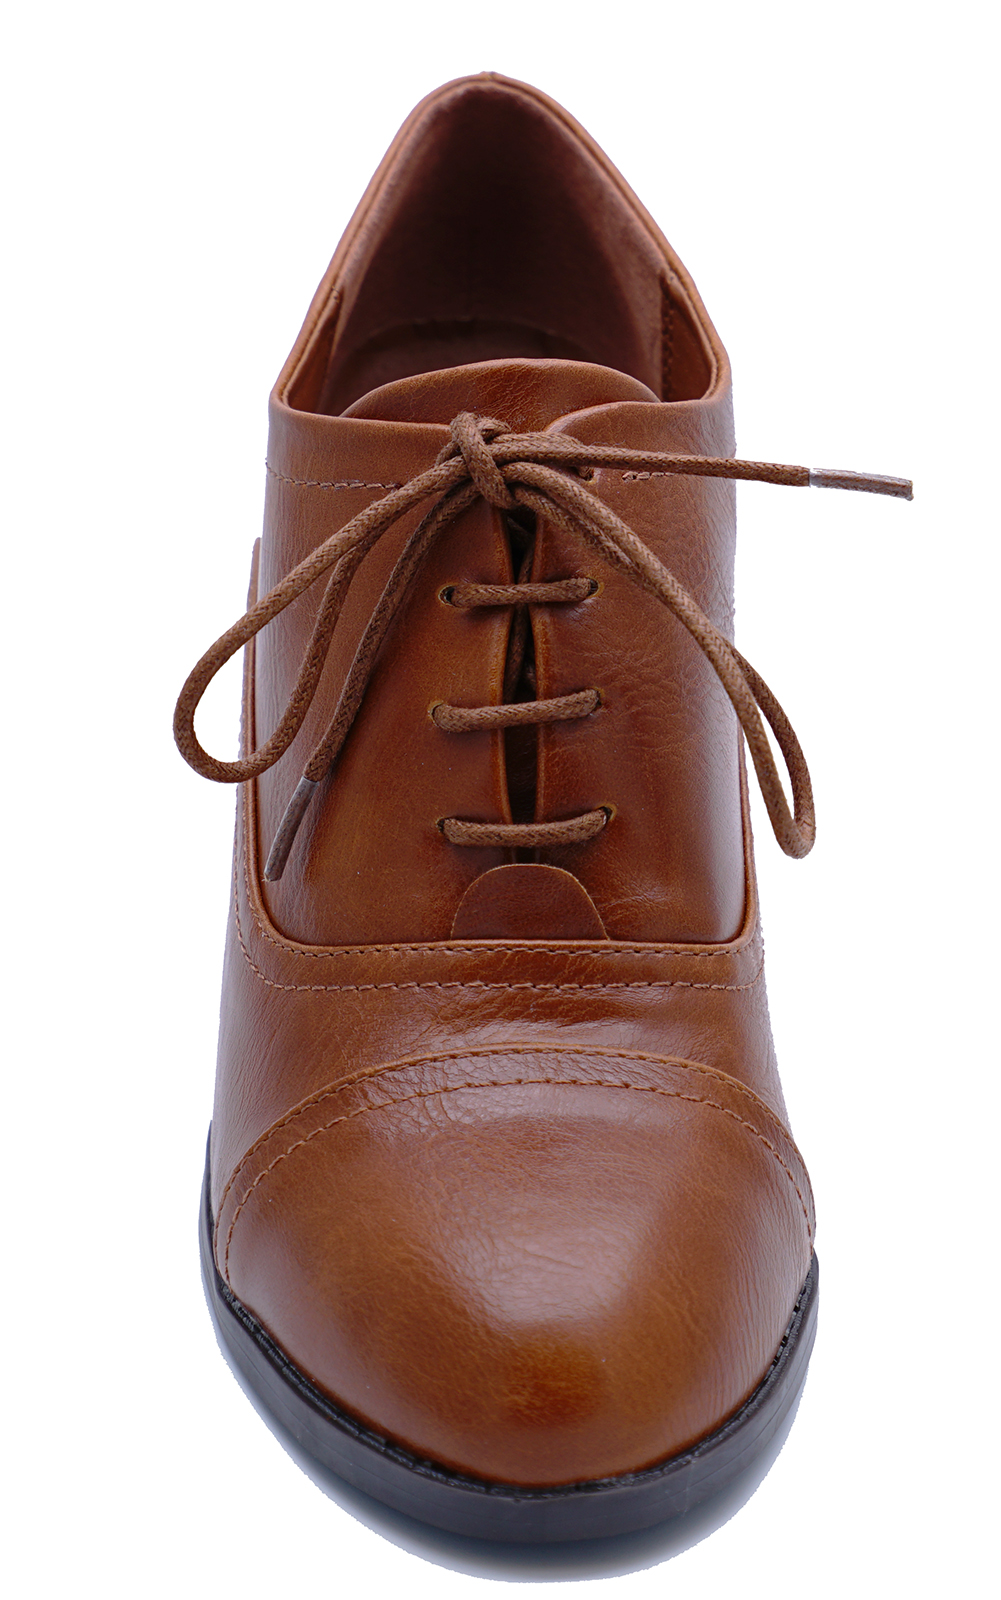 LADIES-BROWN-LACE-UP-BROGUE-ANKLE-BOOTS-SMART-WORK-COMFY-COURT-SHOES-SIZES-3-8 thumbnail 6